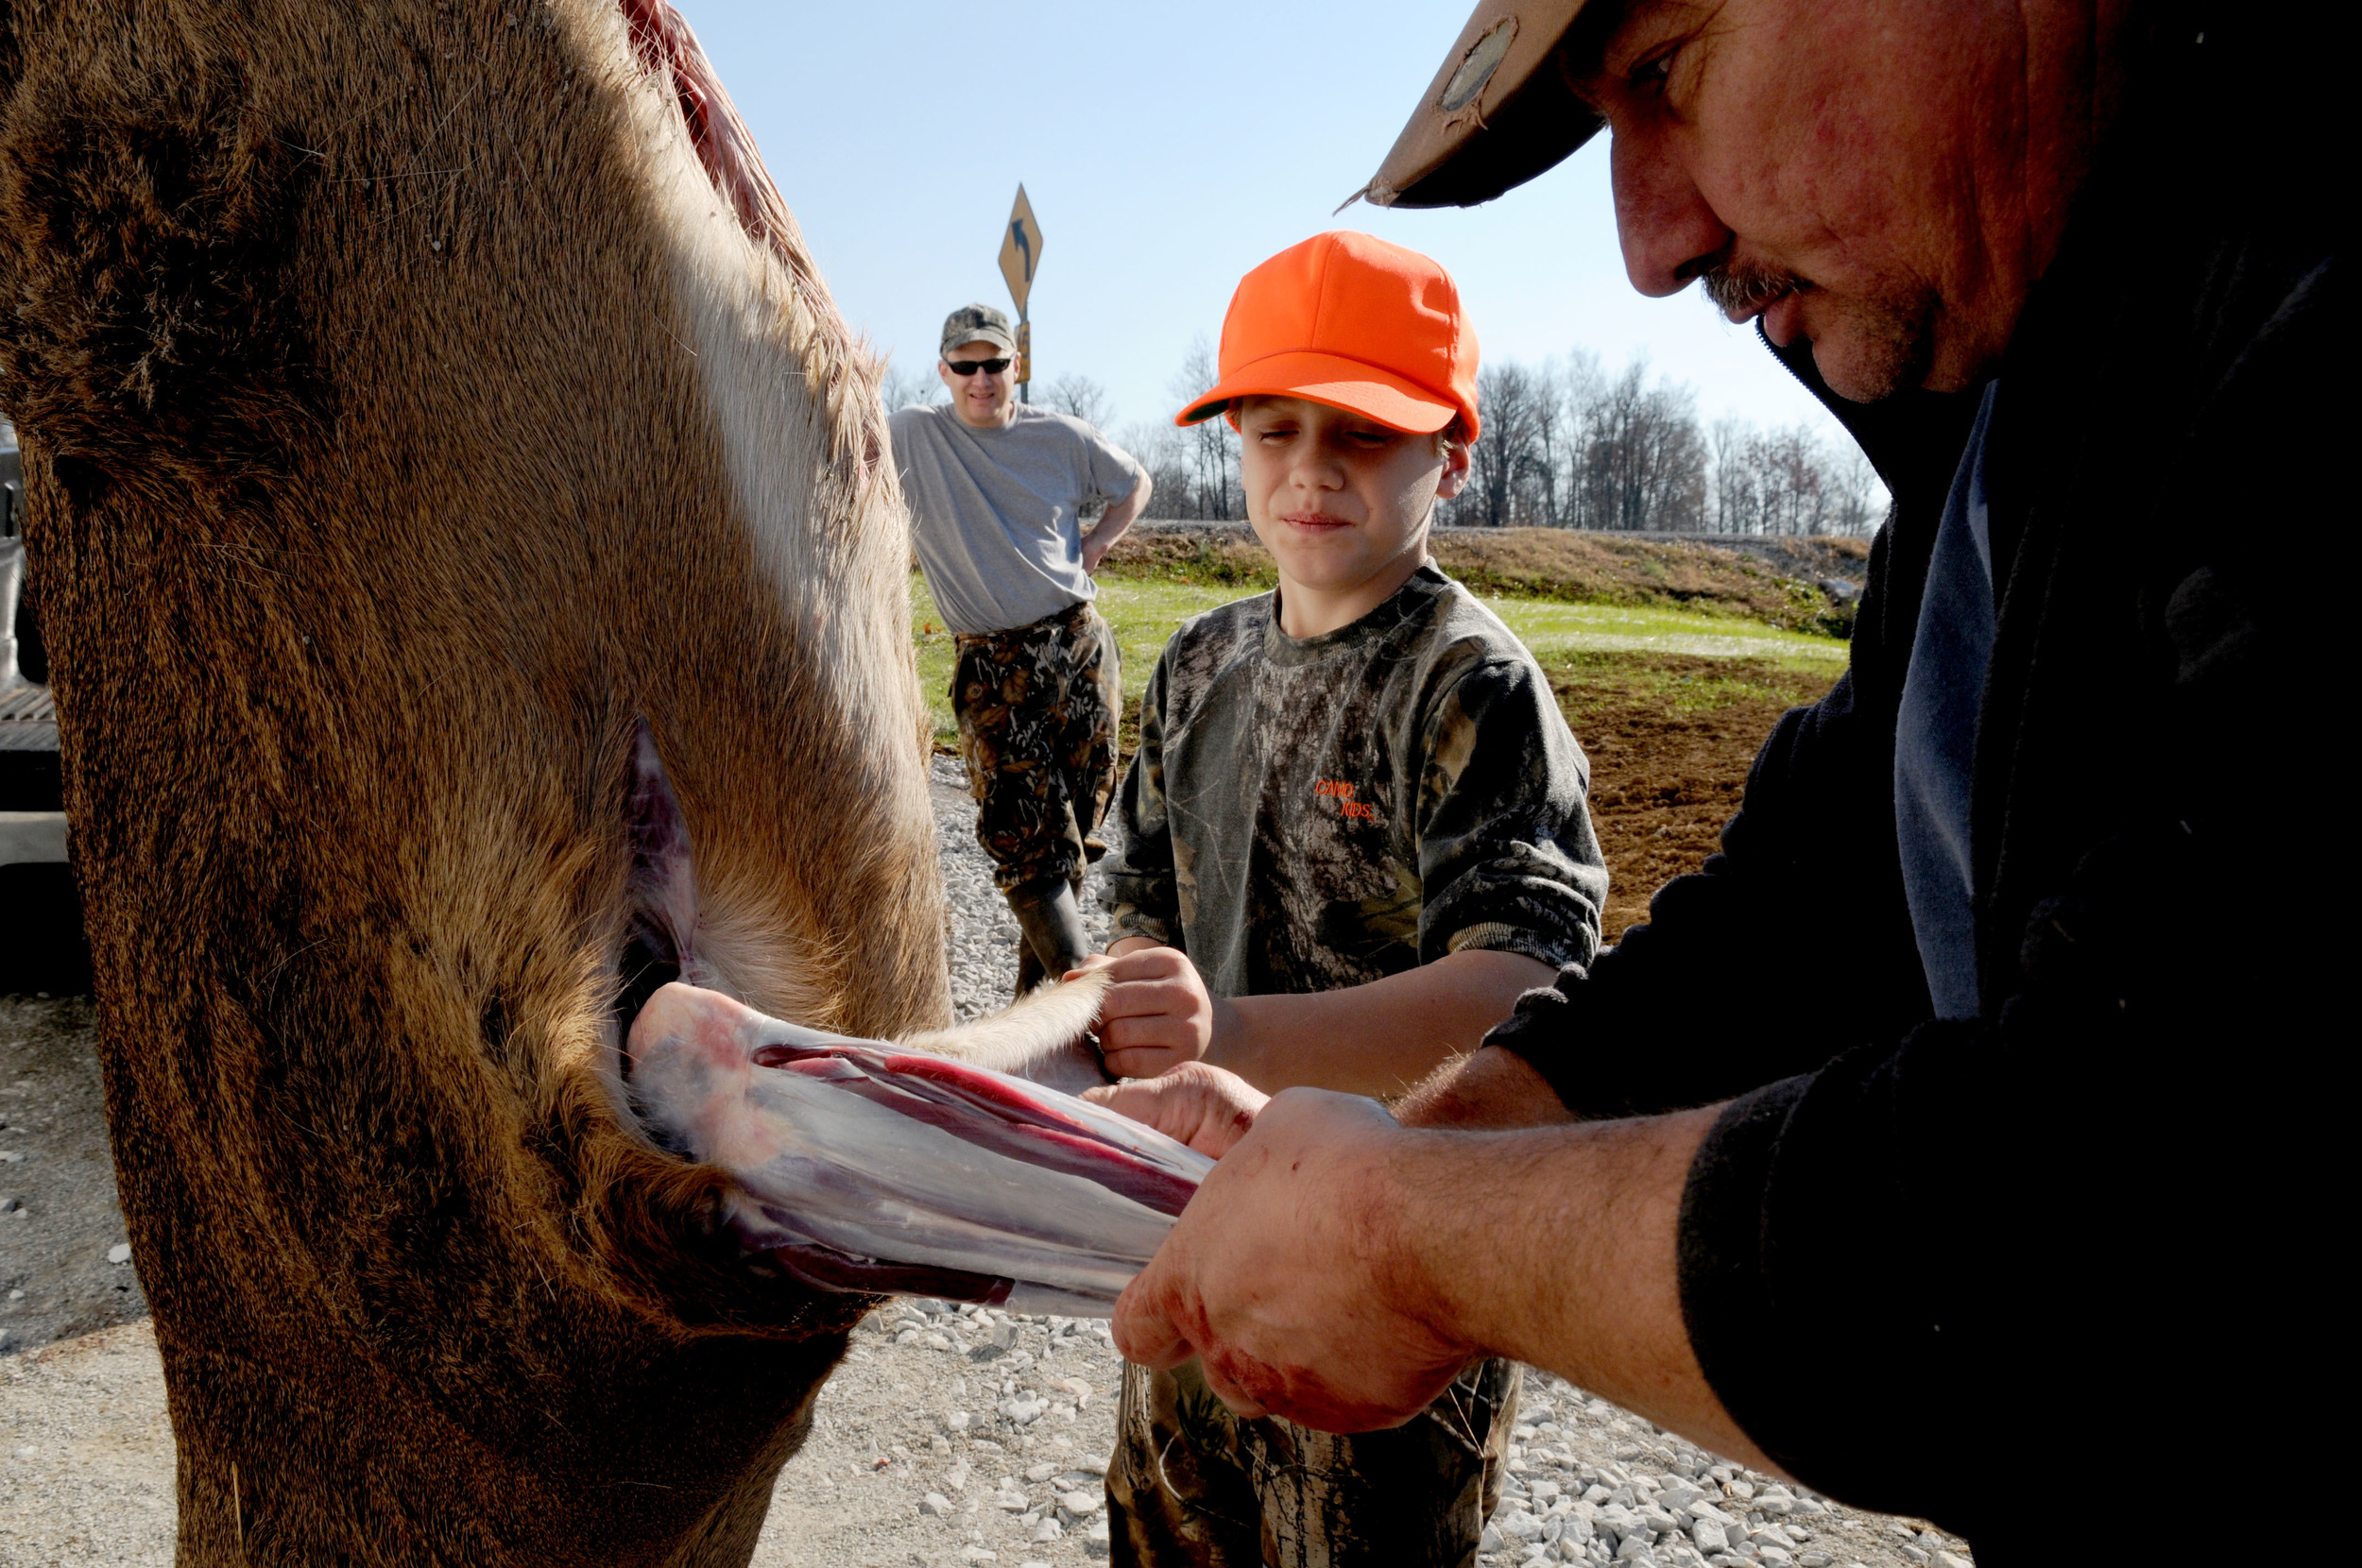 Bob McPherson (left) watches as his son Andrew, 10, (center) helps Jim McIntosh (right) skin a deer that Andrew shot earlier that day outside 'Jims New Life Taxidermy' on Friday, November sixteenth. This deer, which was Andrews first ever, will be prepared for a wall mount by Jim within the next six months. McPherson and his son traveled from Virginia to hunt in Kentucky.